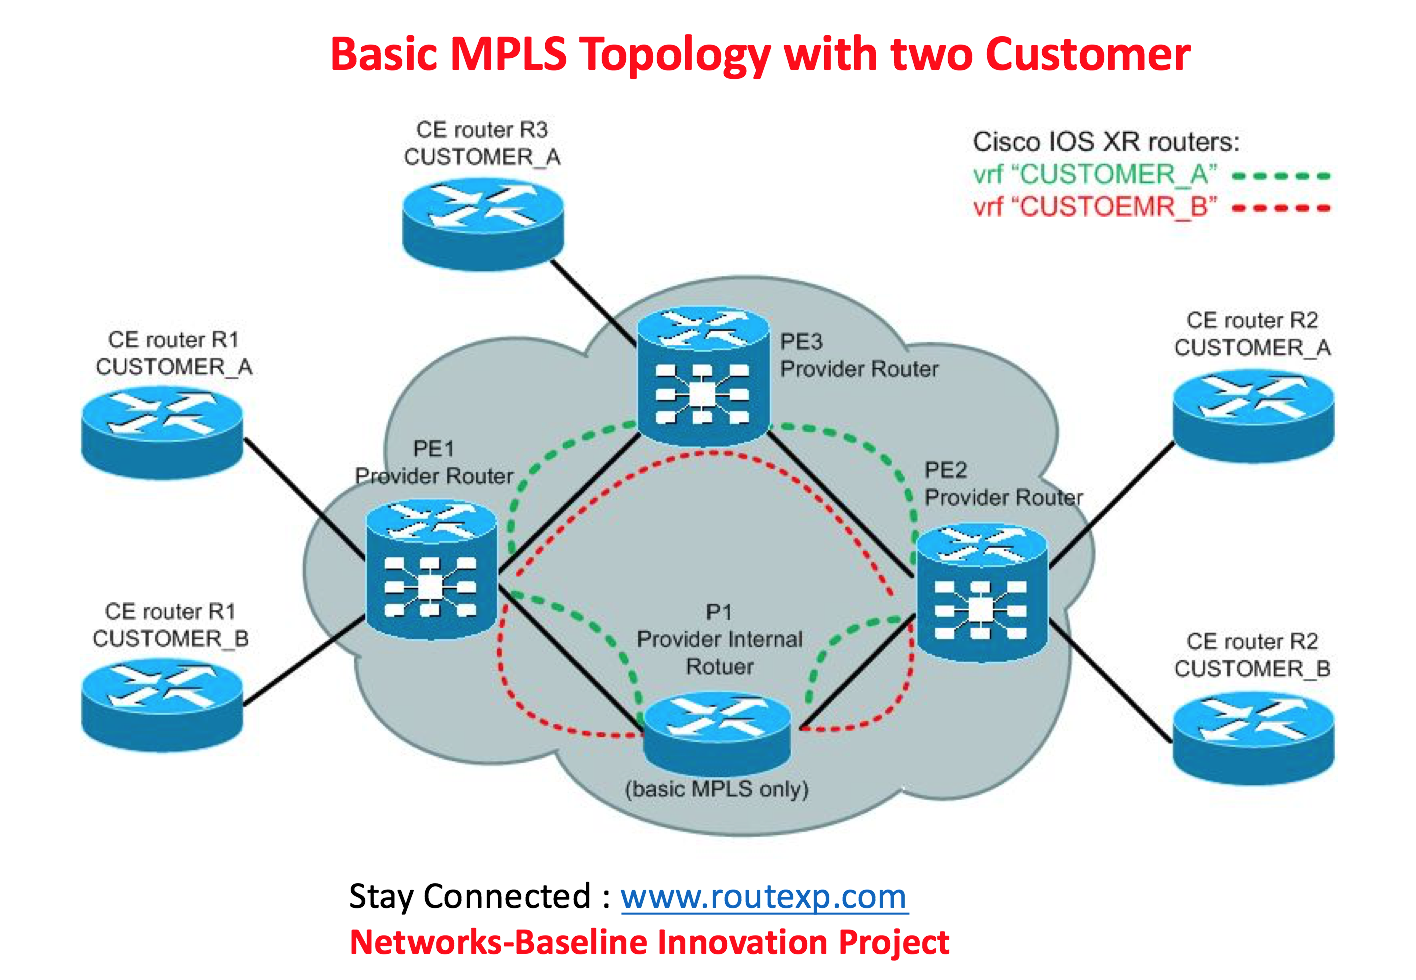 Configuration of MPLS Switching and Forwarding - Route XP Networks